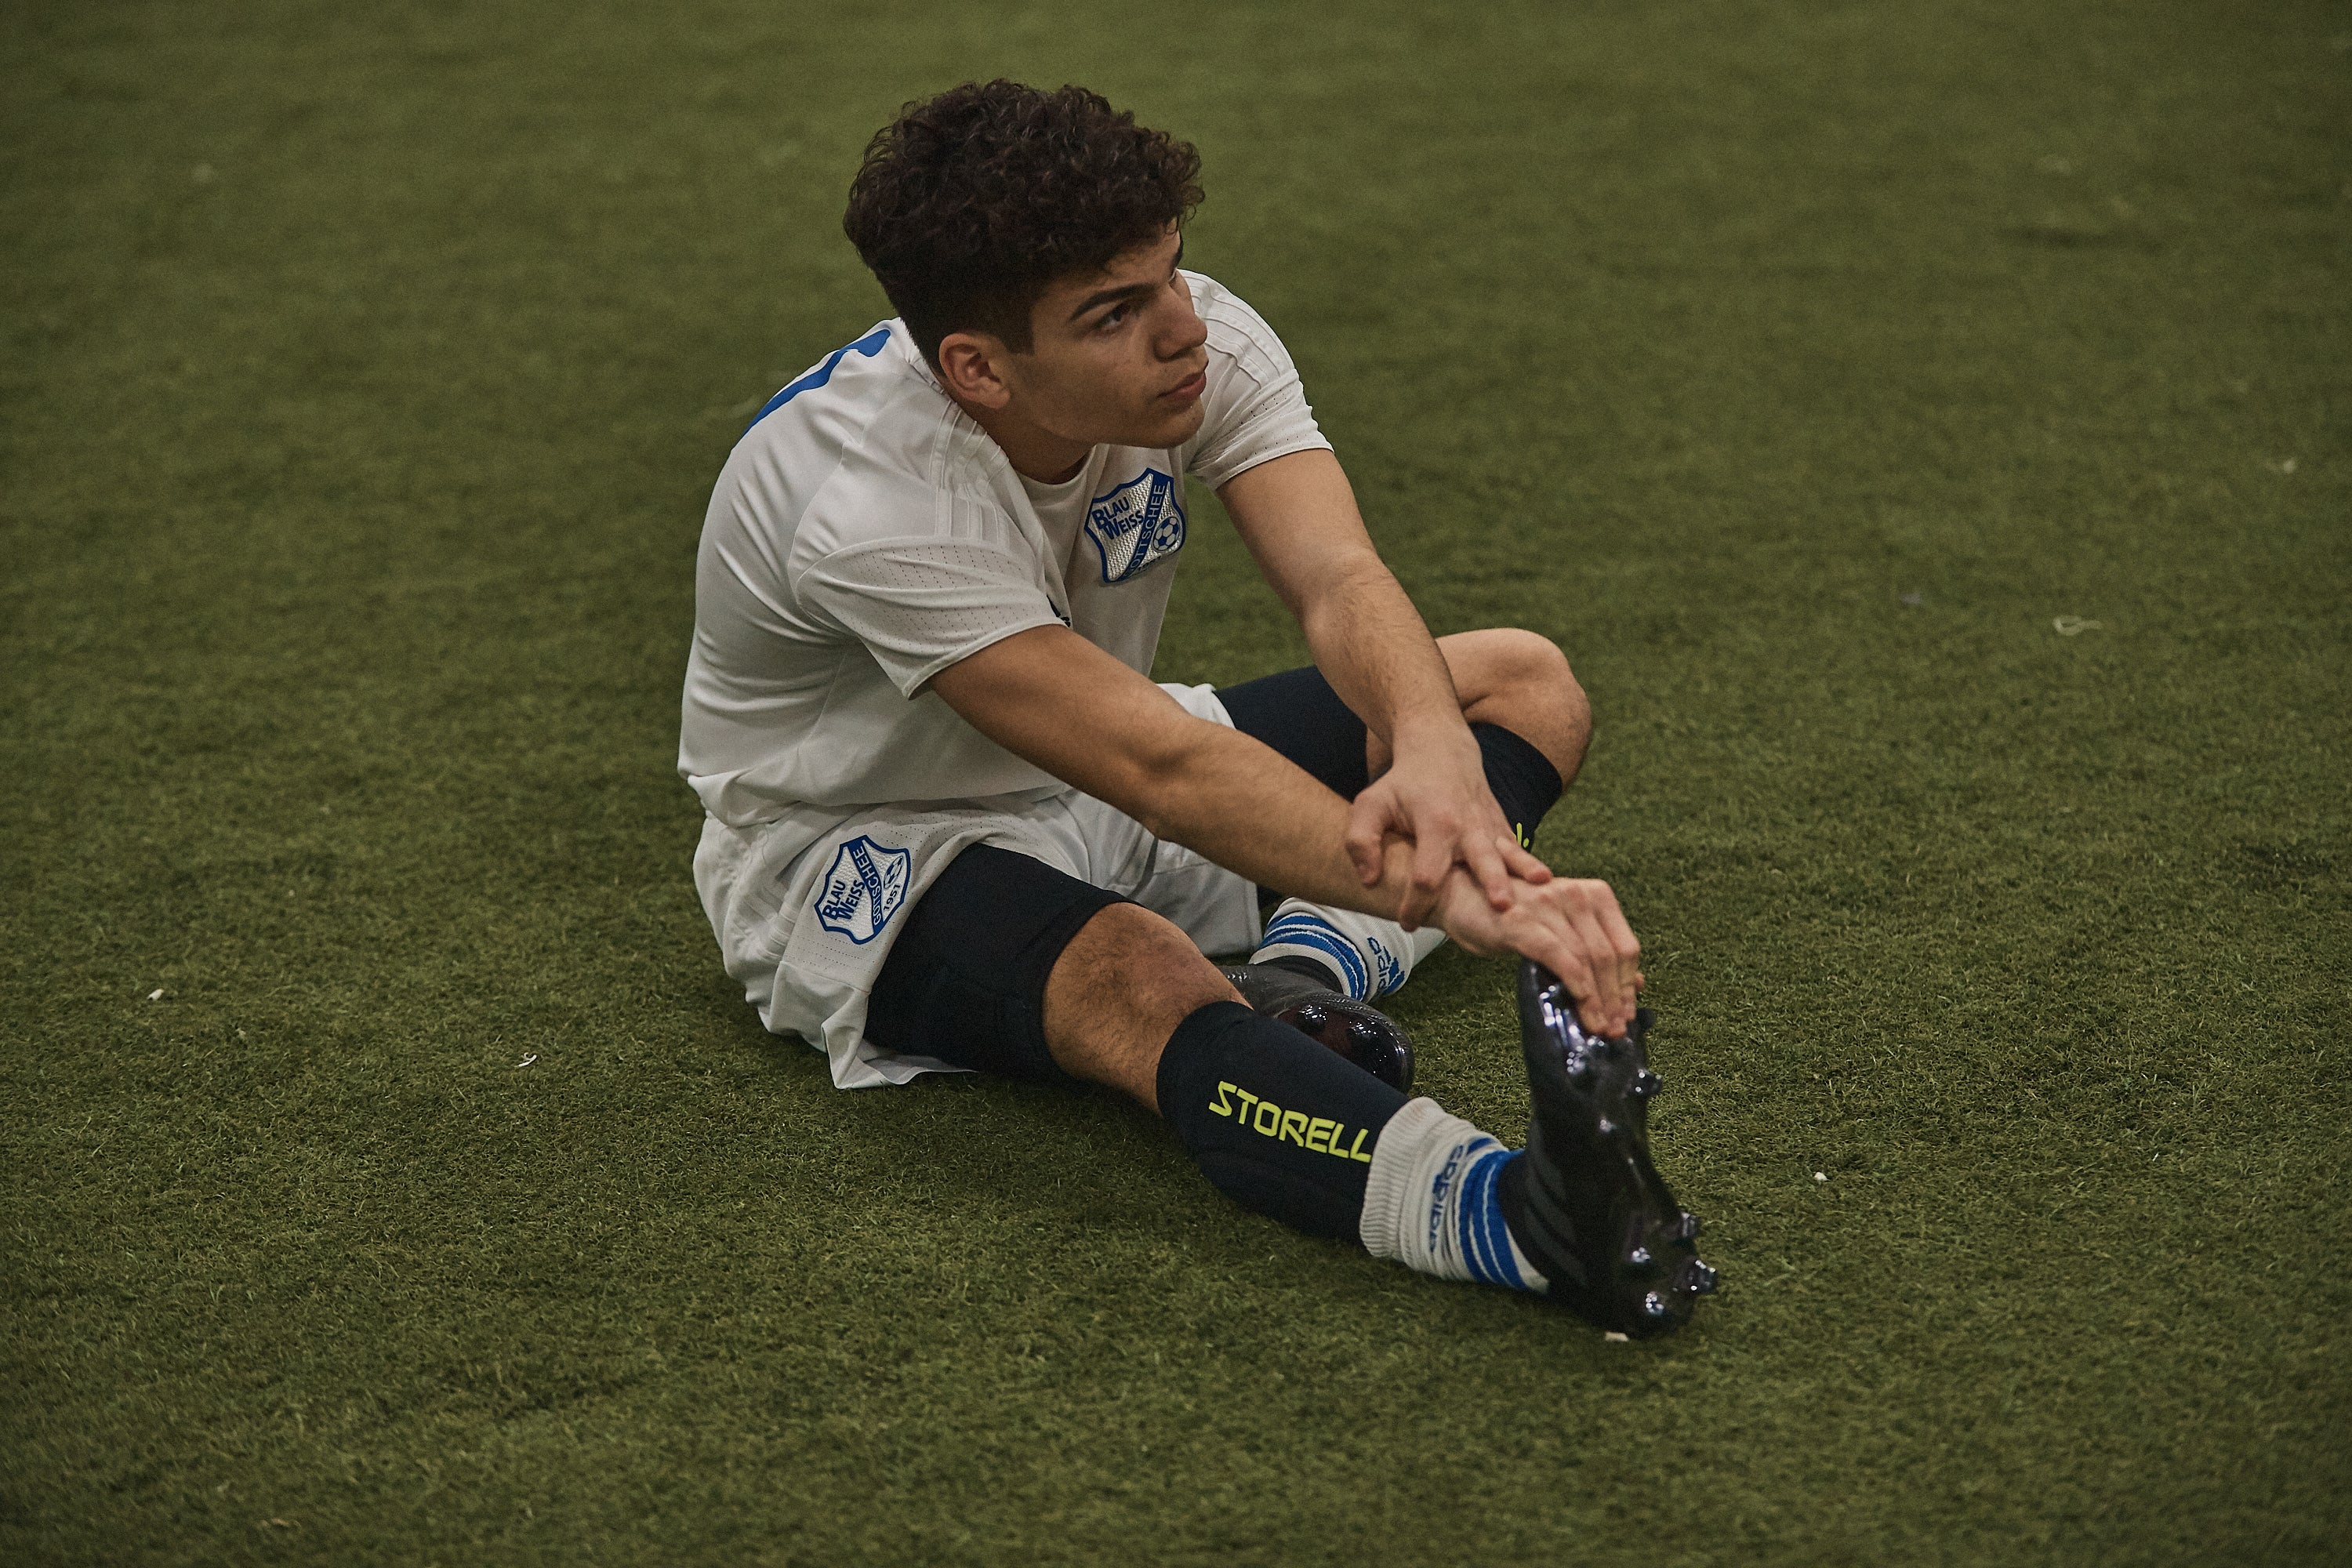 Storelli equipment can prevent turf burn injuries in soccer players of all ages.